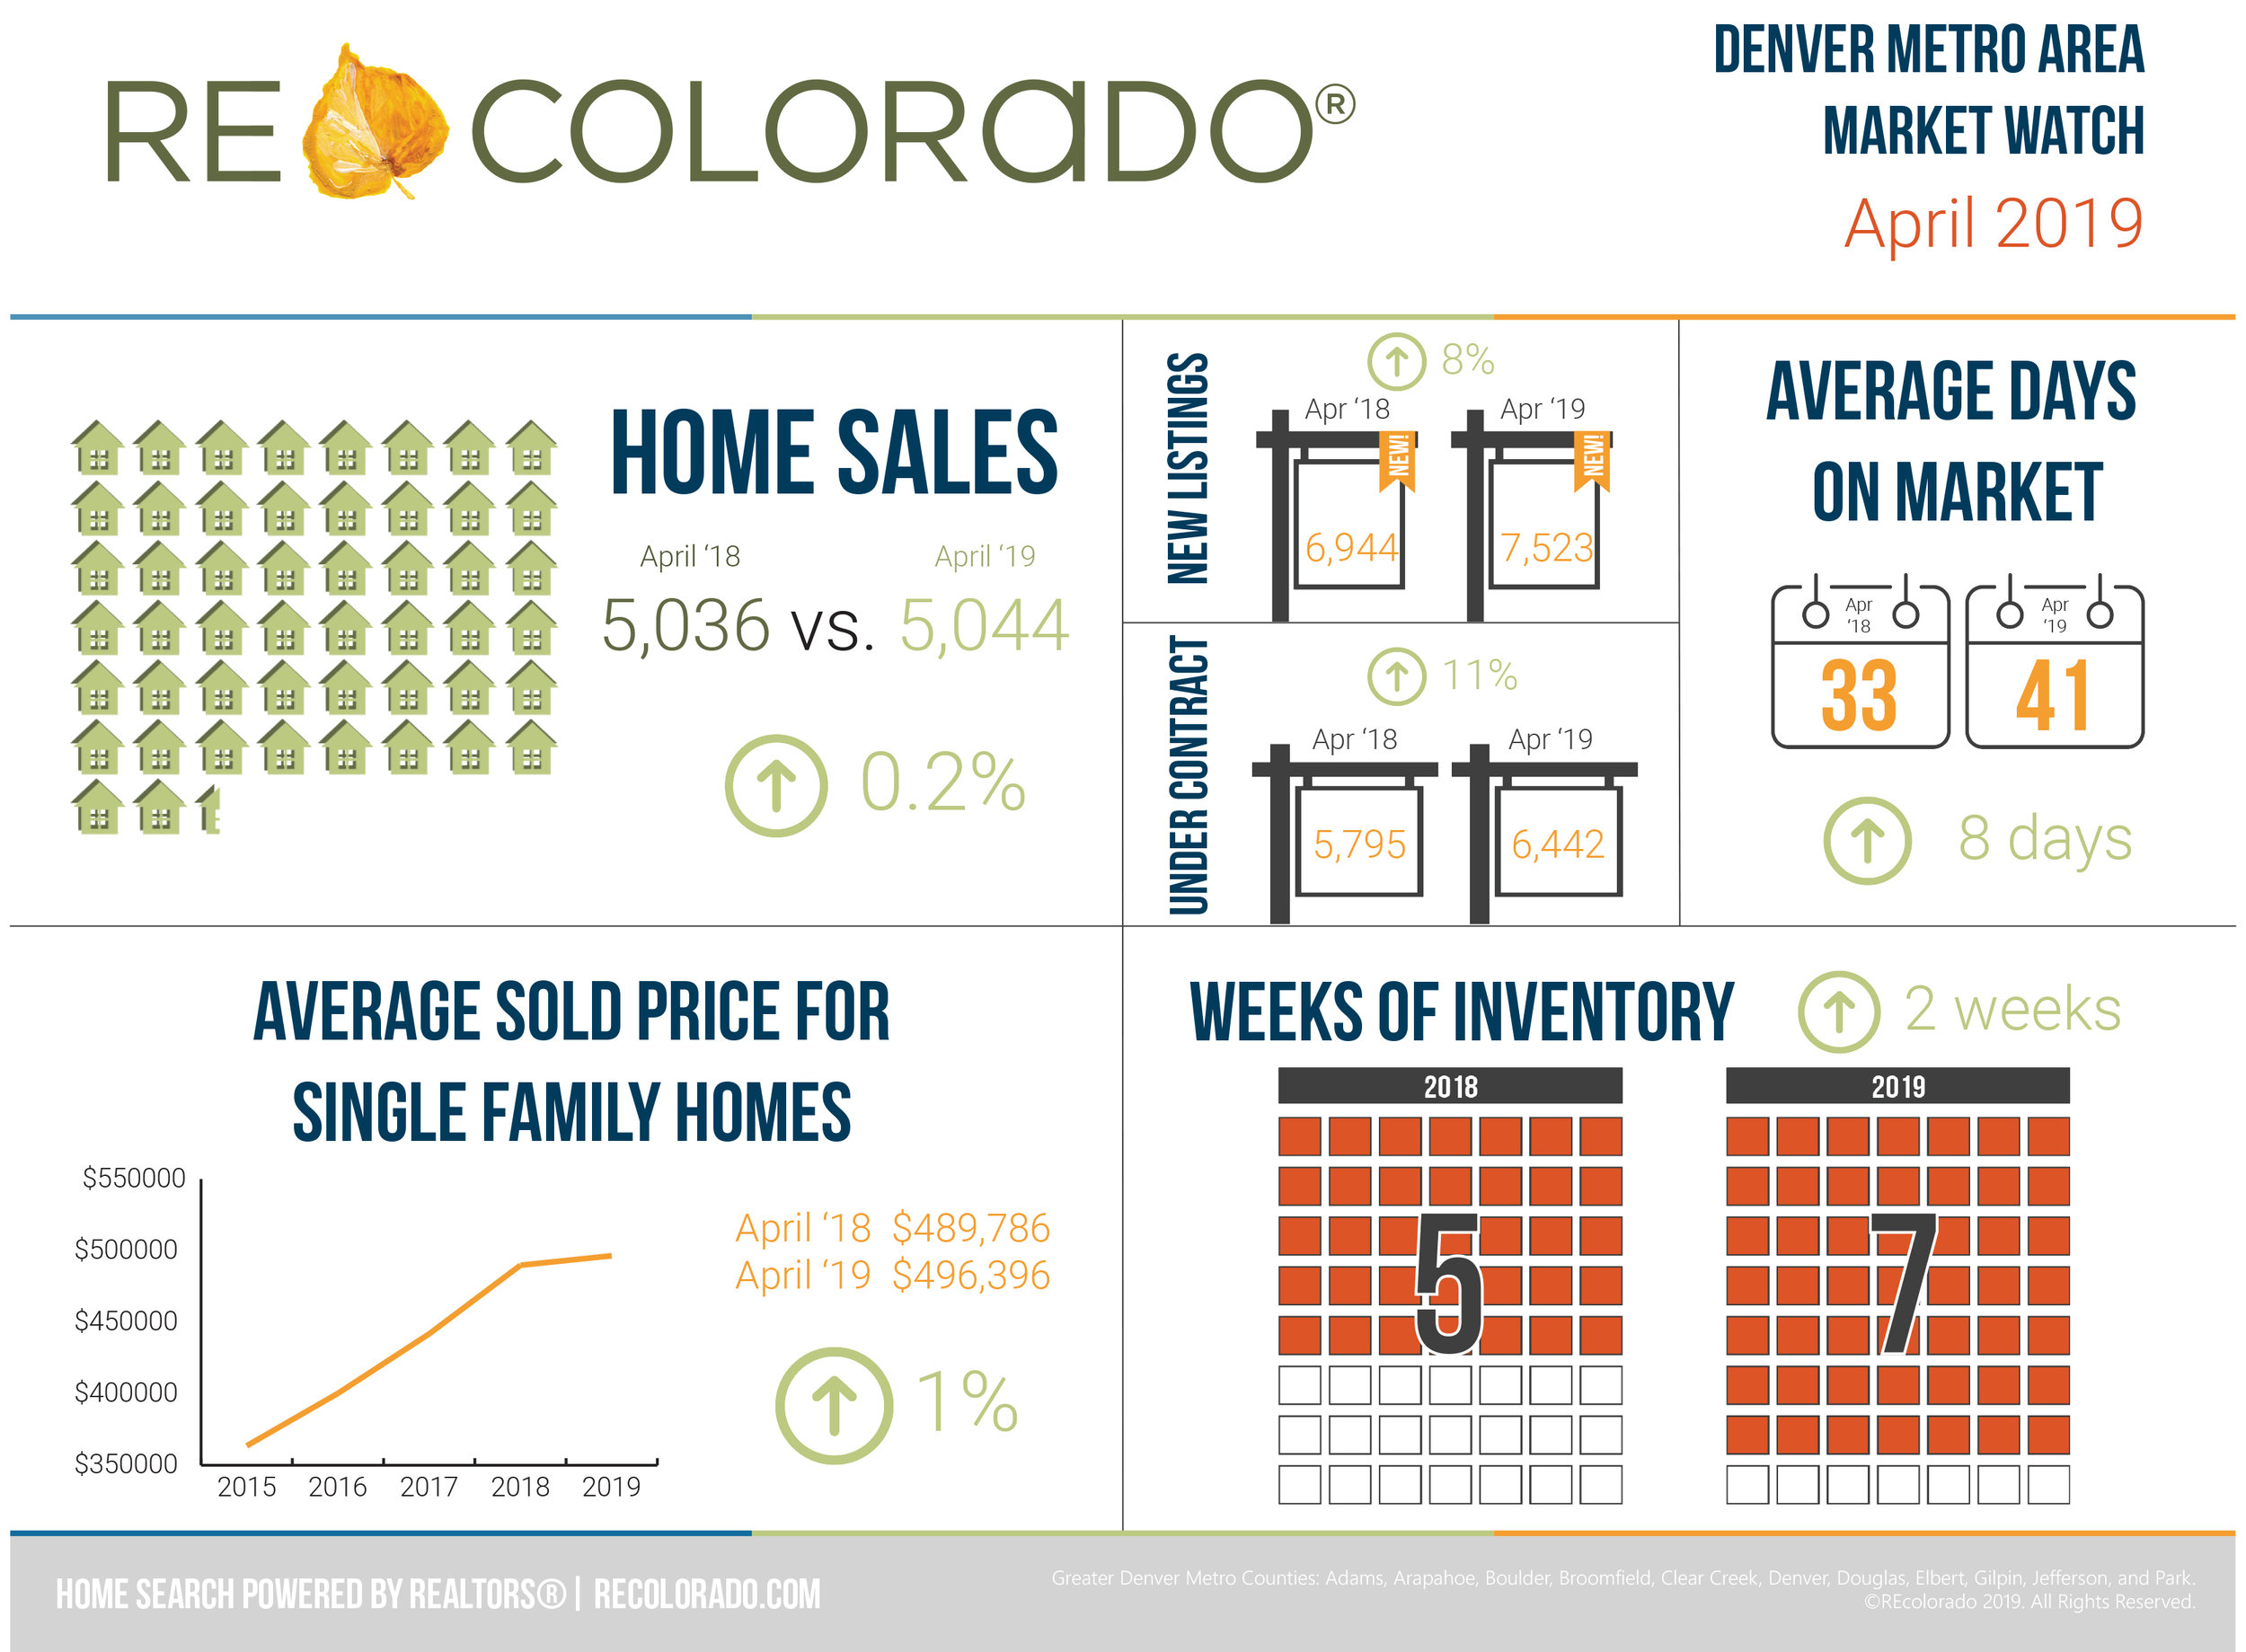 Denver Real Estate Market Watch - April 2019 - All market indicators in REcolorado's Market Watch Report are up year over year, including home sales, new listings, active listings, and sold prices.